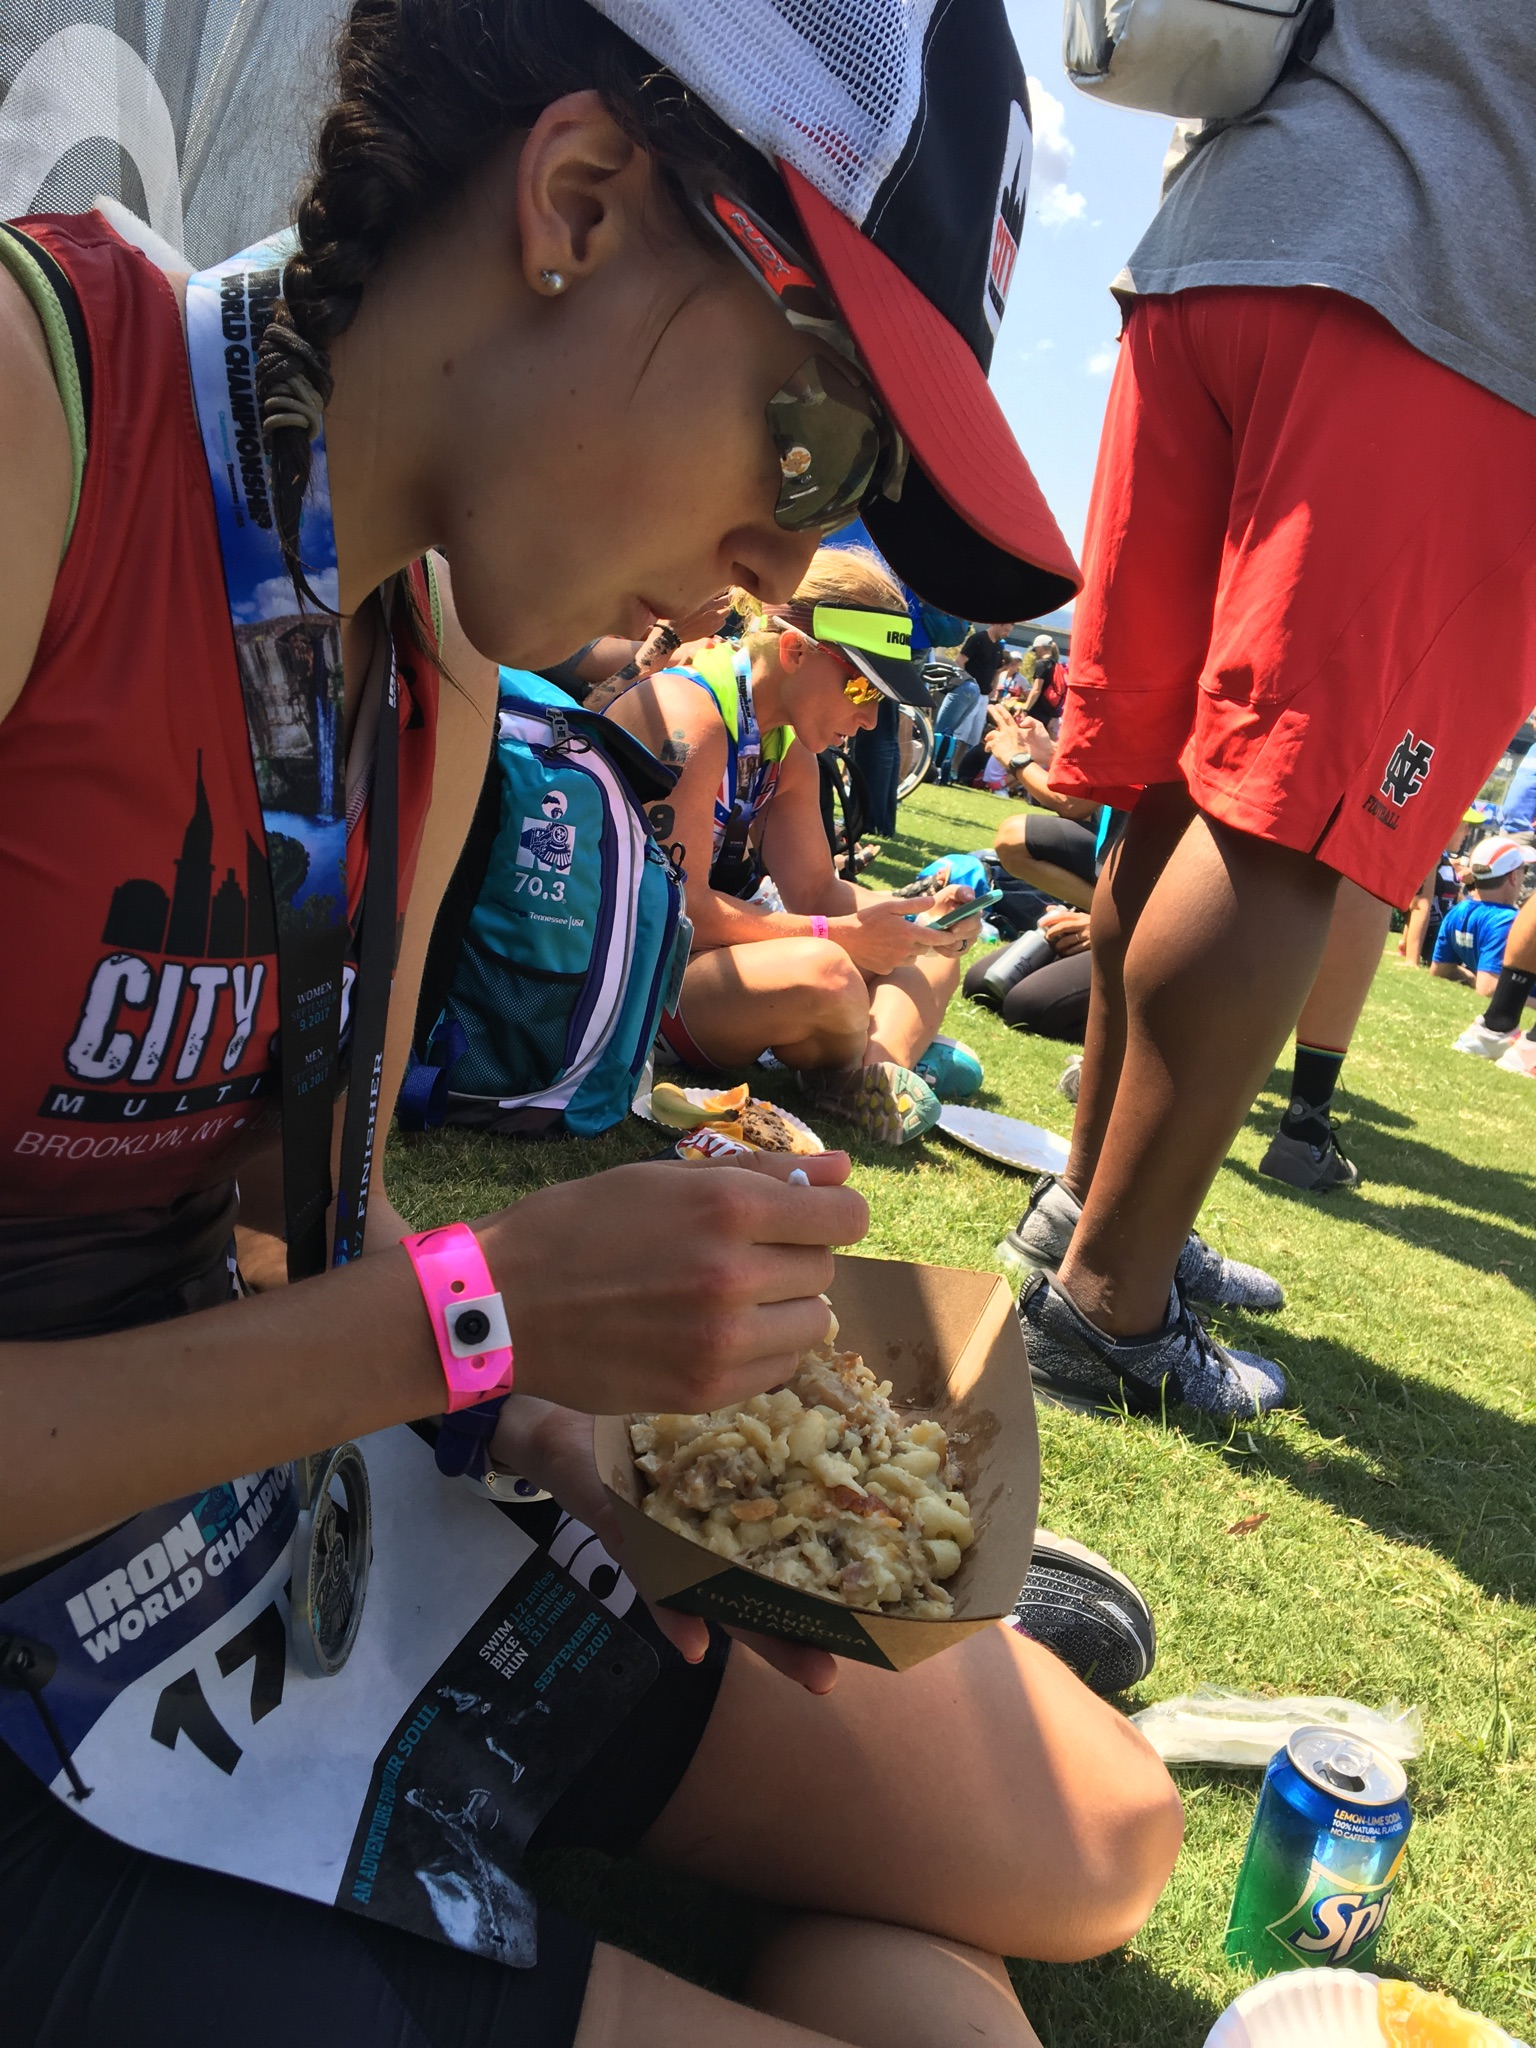 Covered in Gatorade, water-logged, sweat, an athlete eating. Photo credit:Gerry